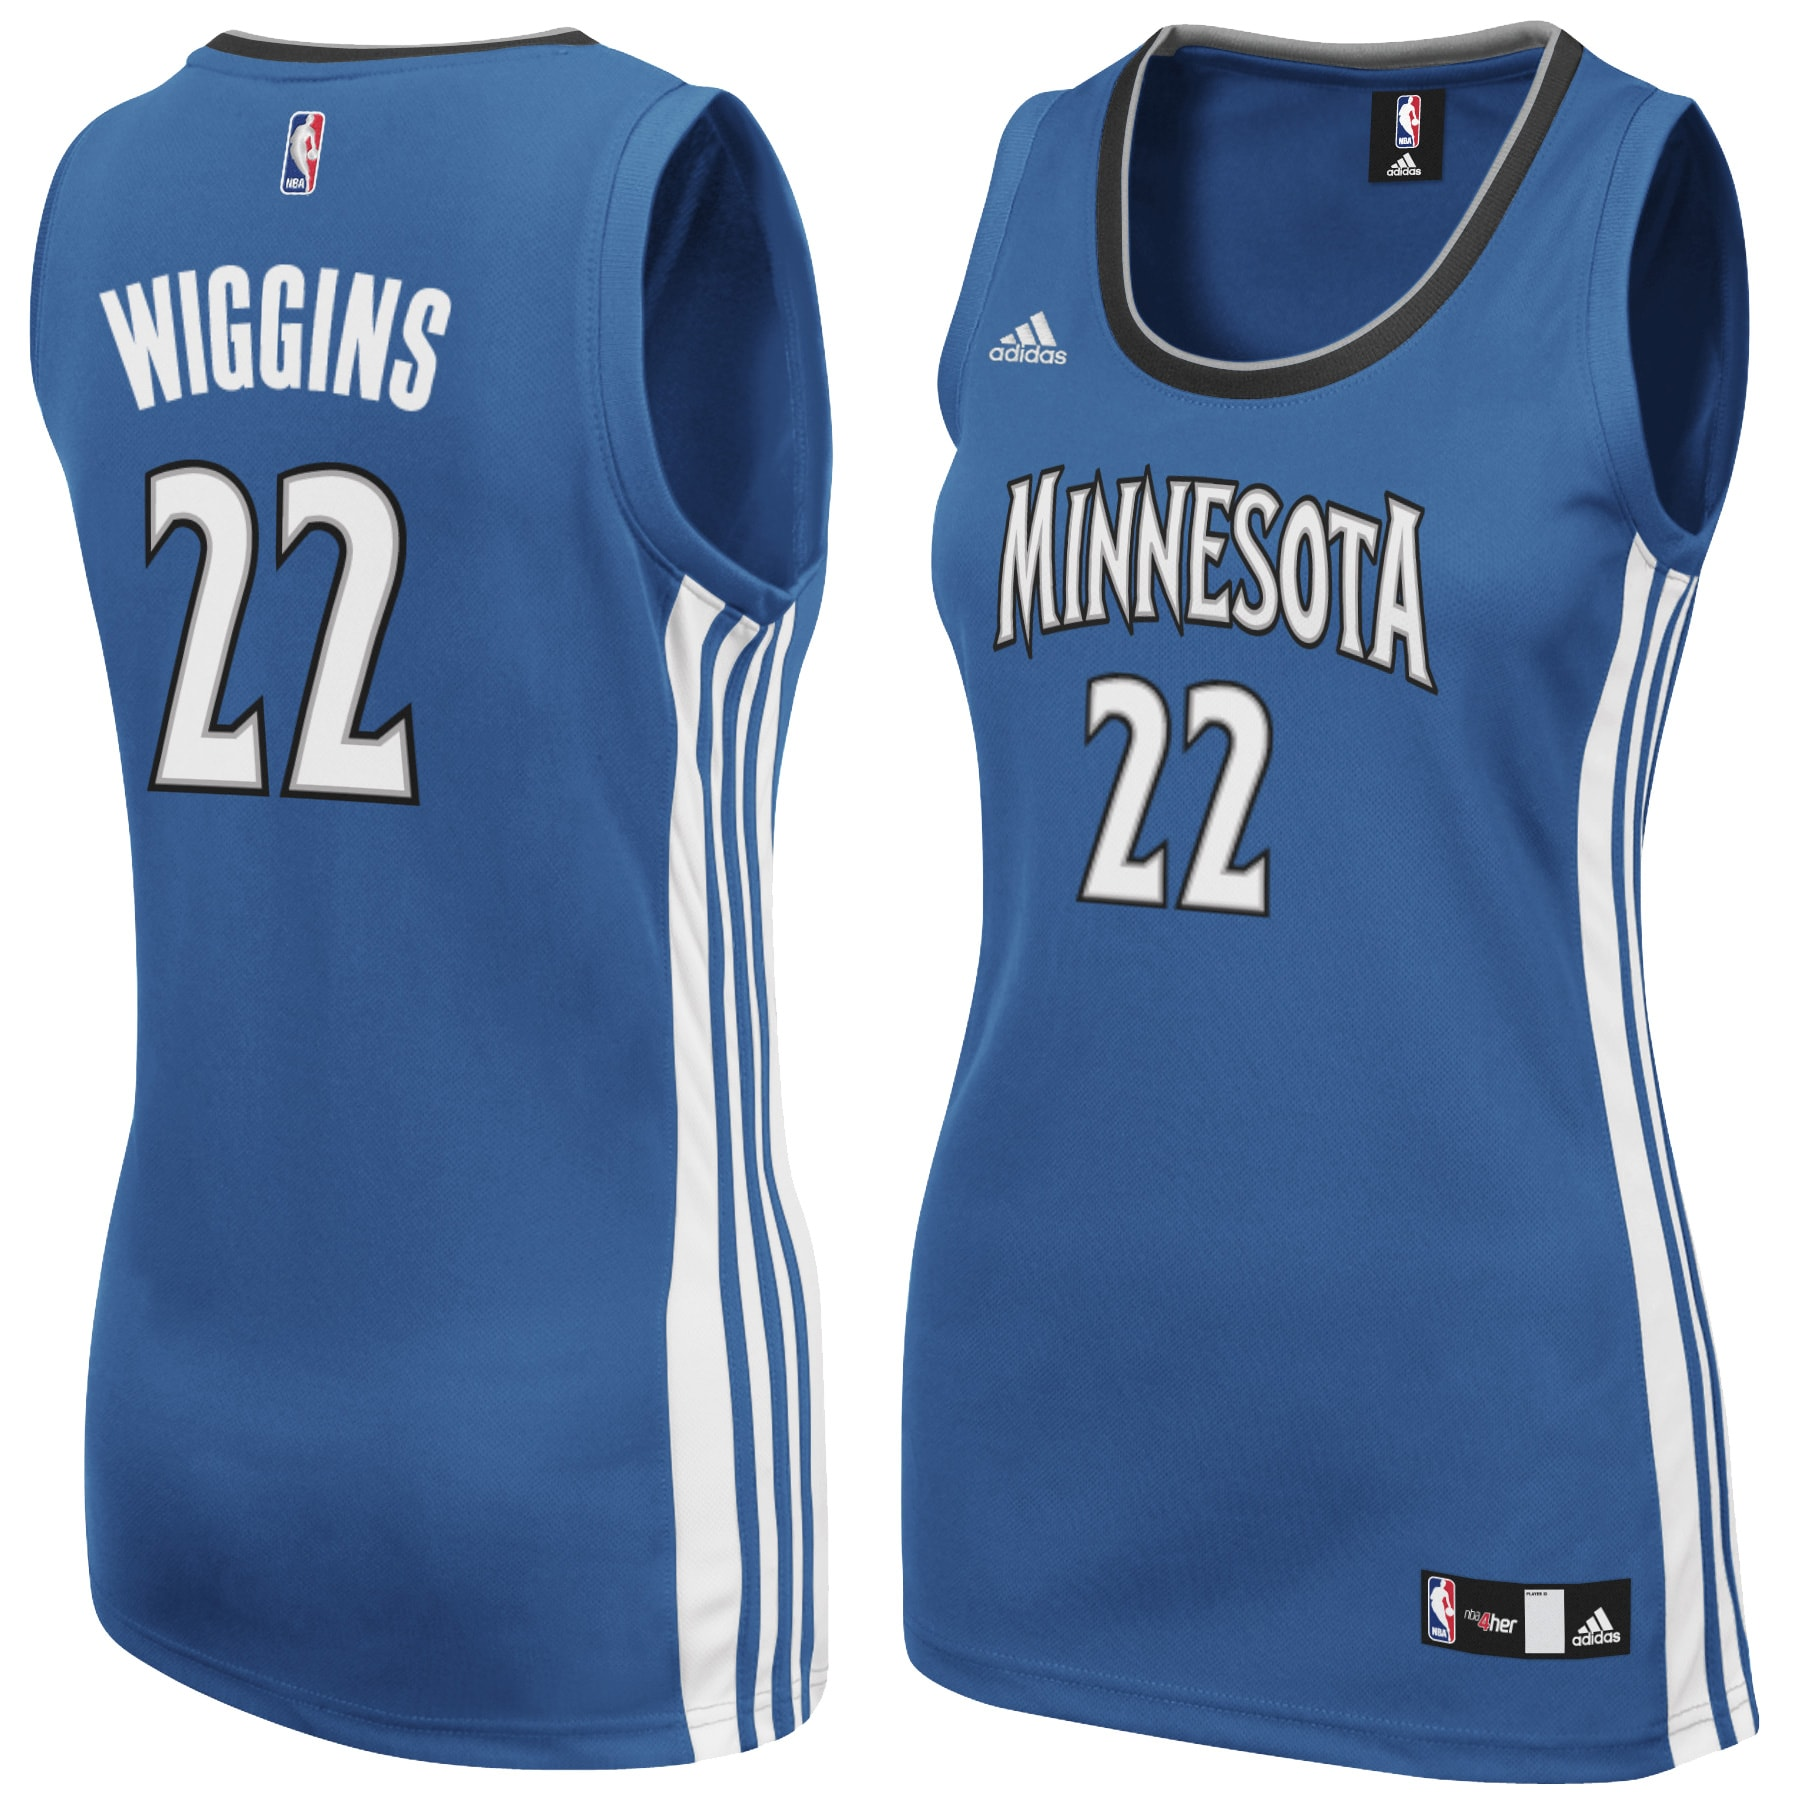 Andrew Wiggins Minnesota Timberwolves adidas Women's Replica Road Jersey - Light Blue